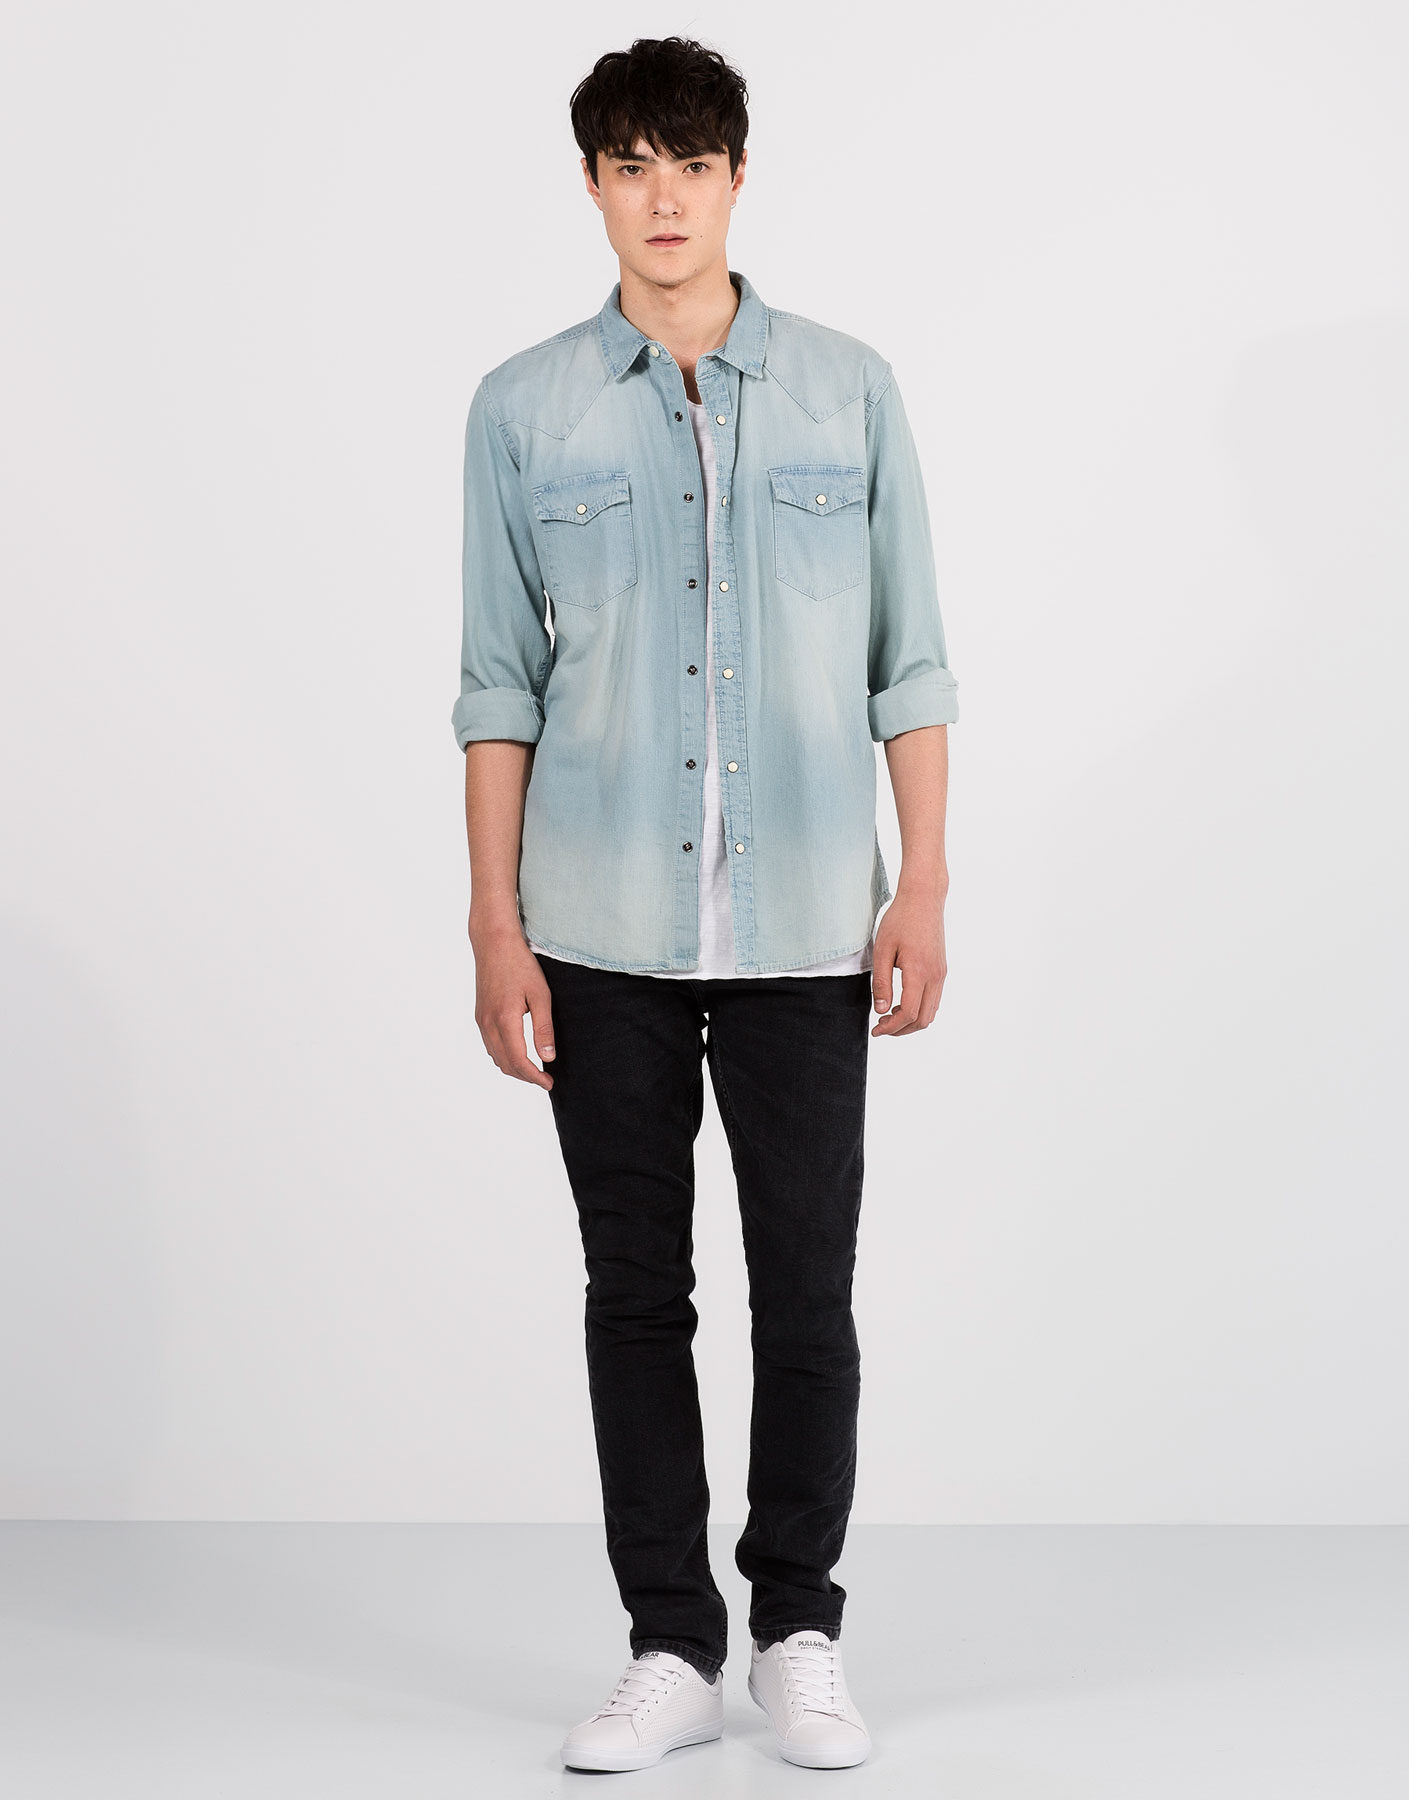 Basic cowboy denim shirt